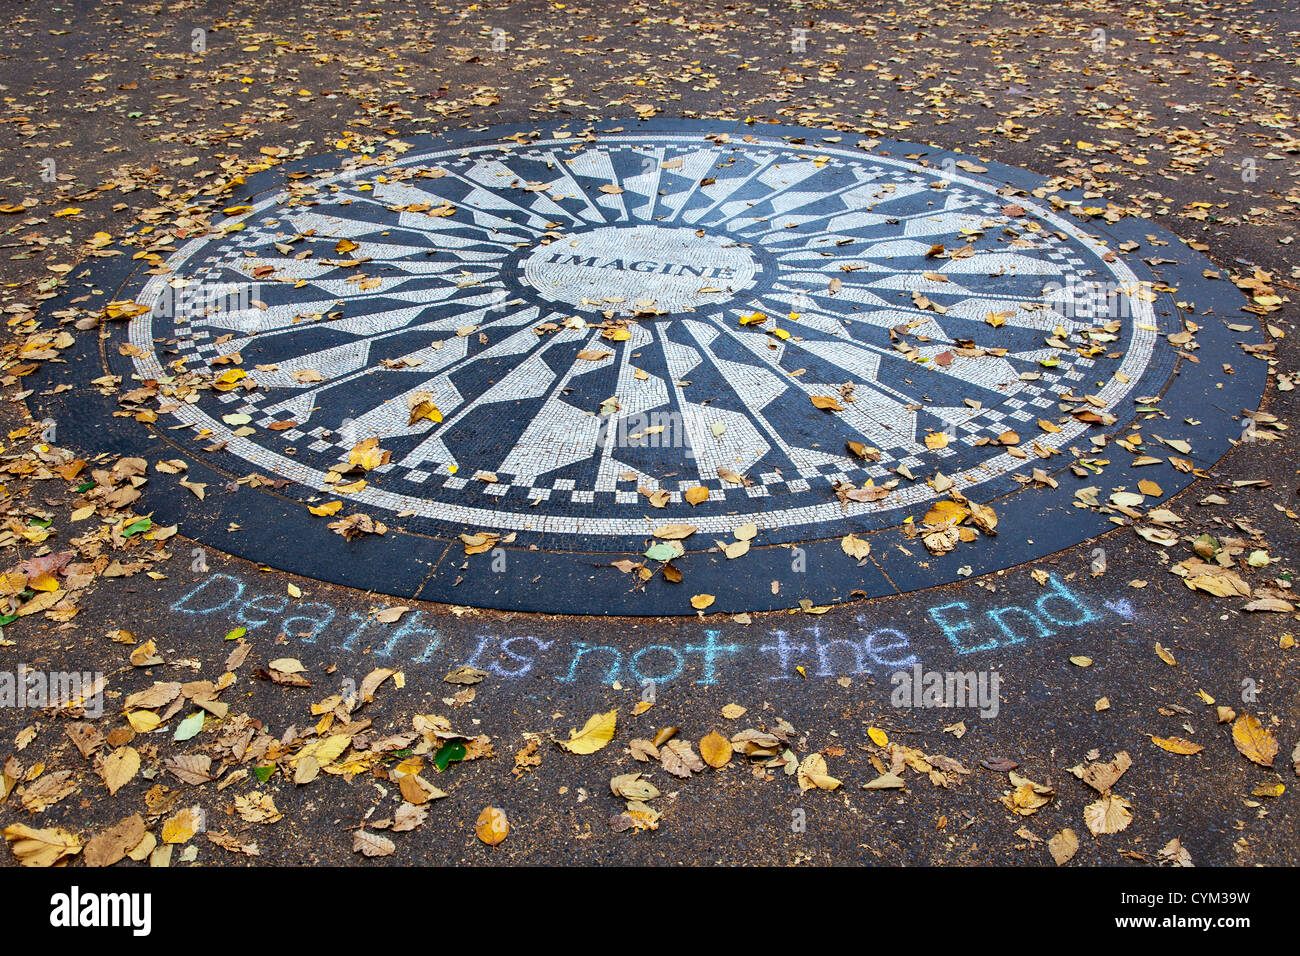 Central Park's Memorial to John Lennon - Stock Image